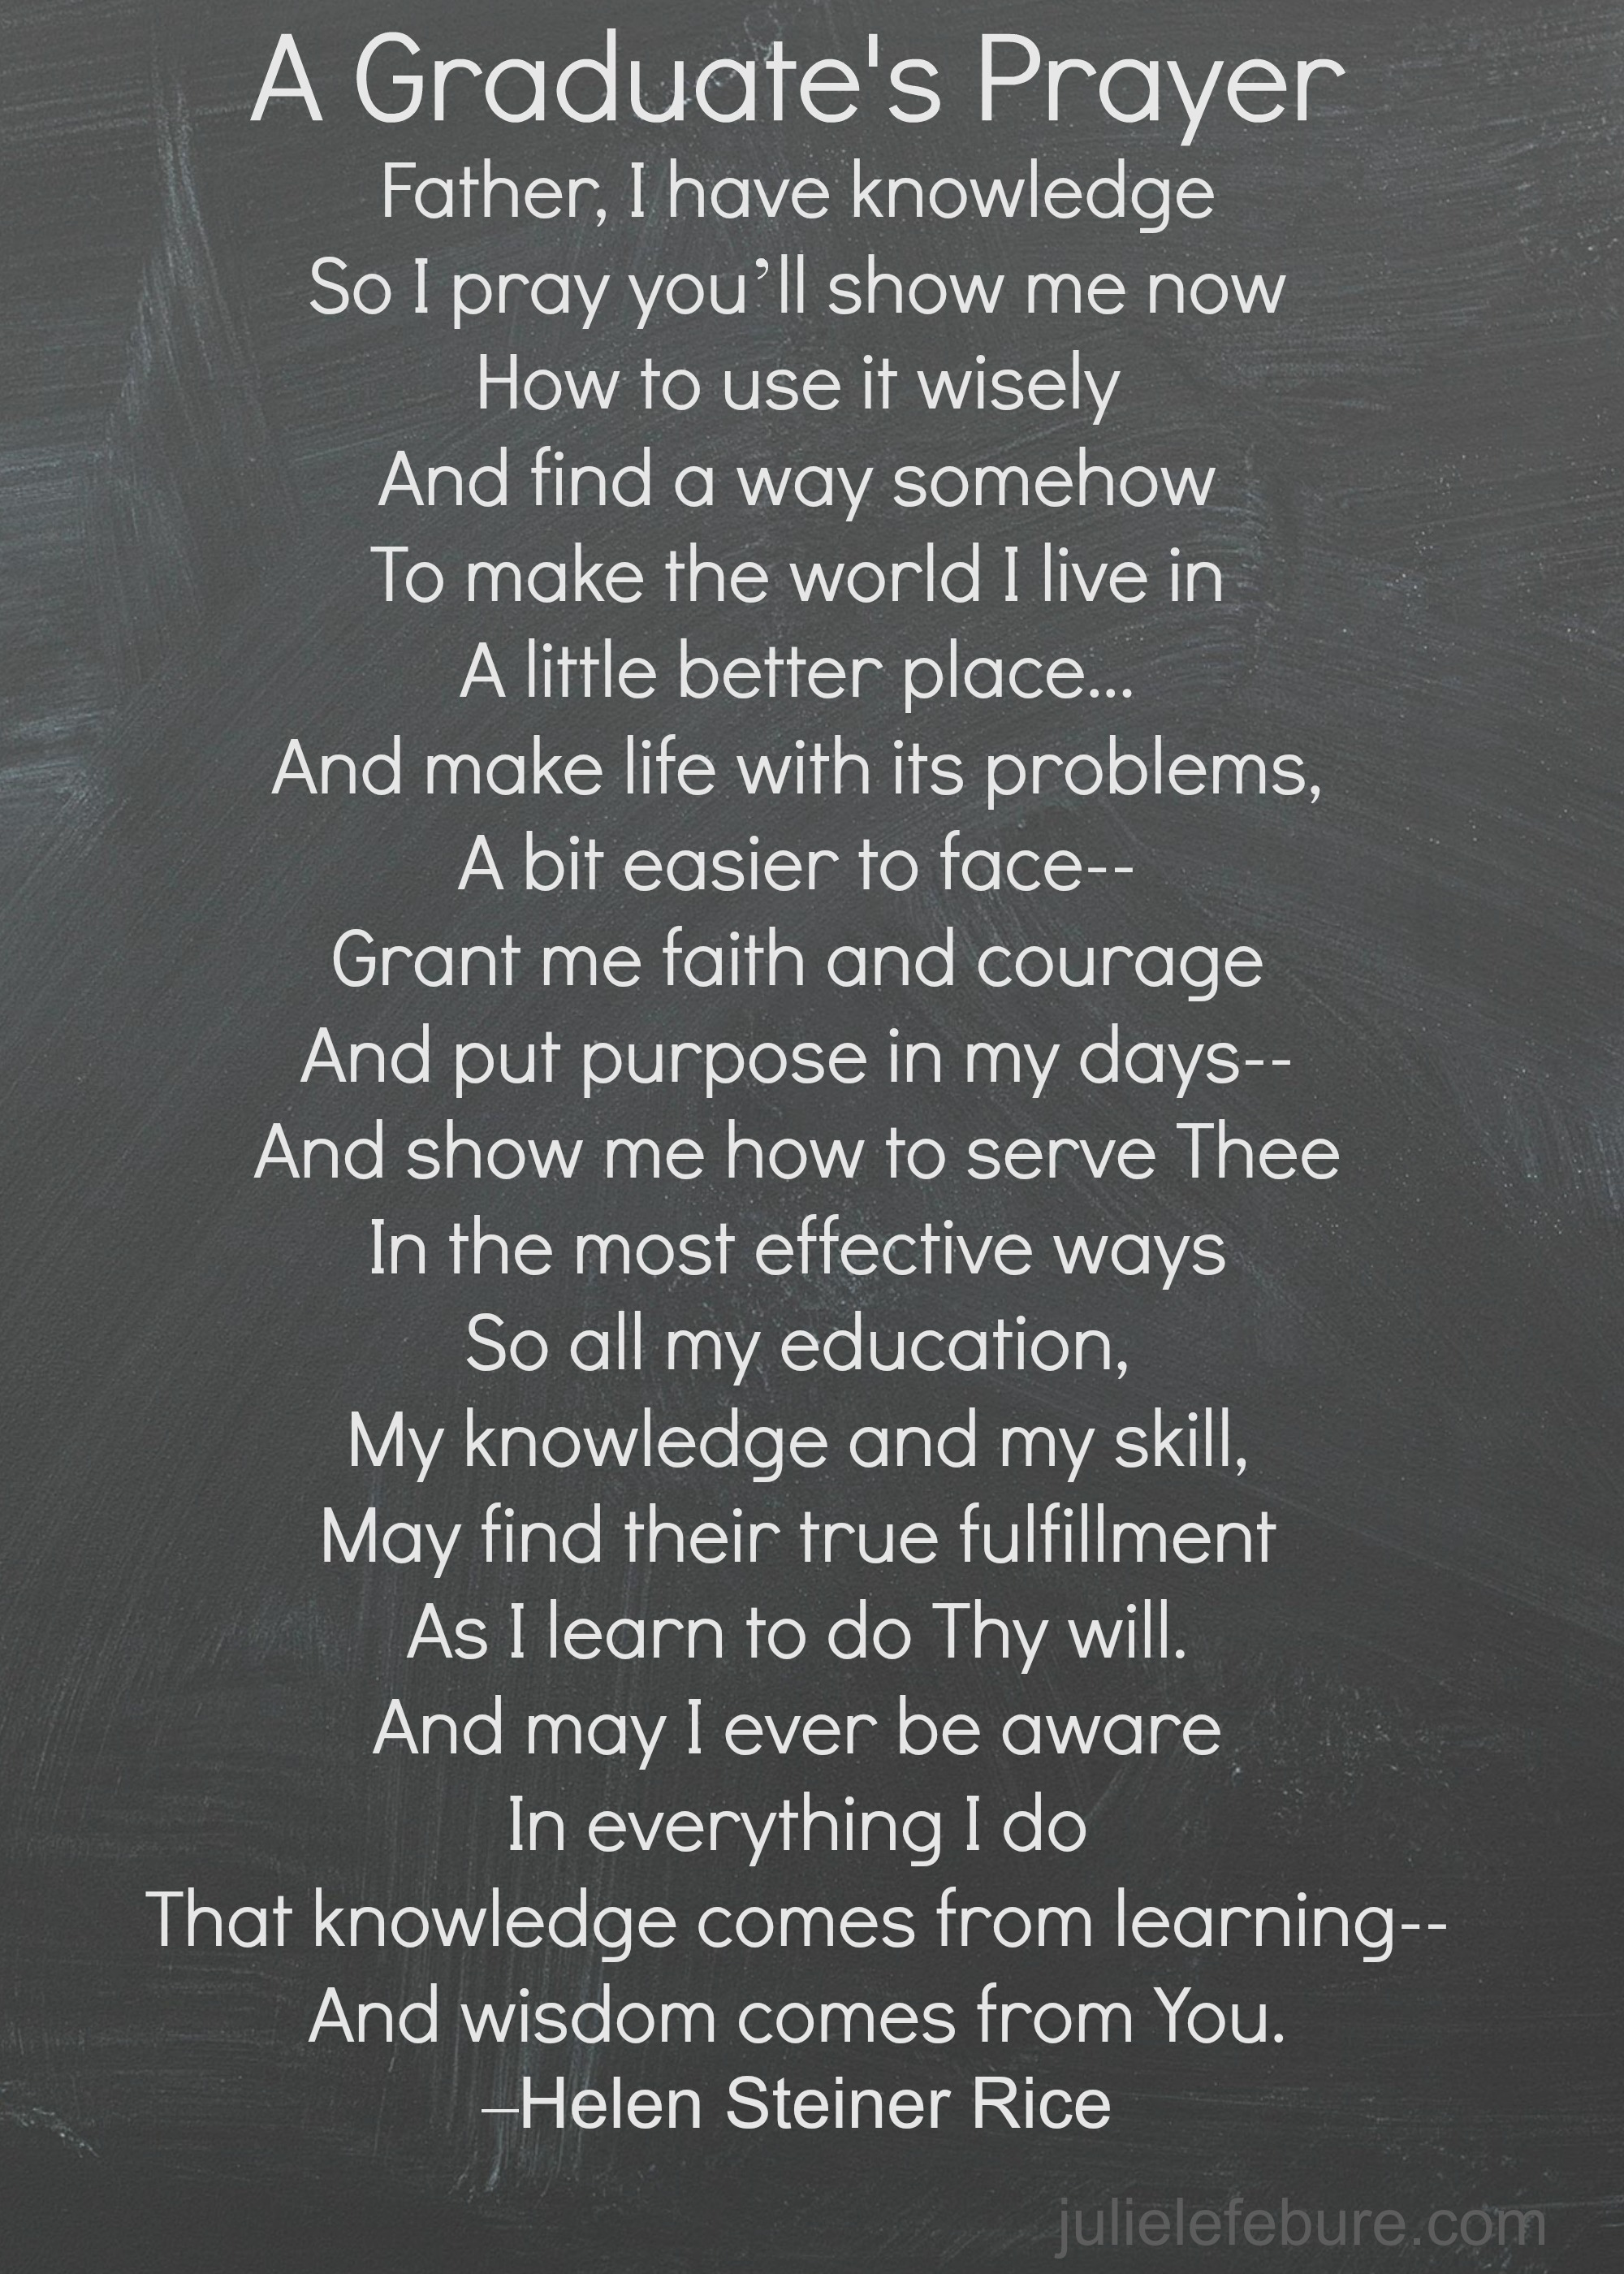 wordsonimagescom helpful non helpful a graduates prayer father i have knowledge so i pray youll show me